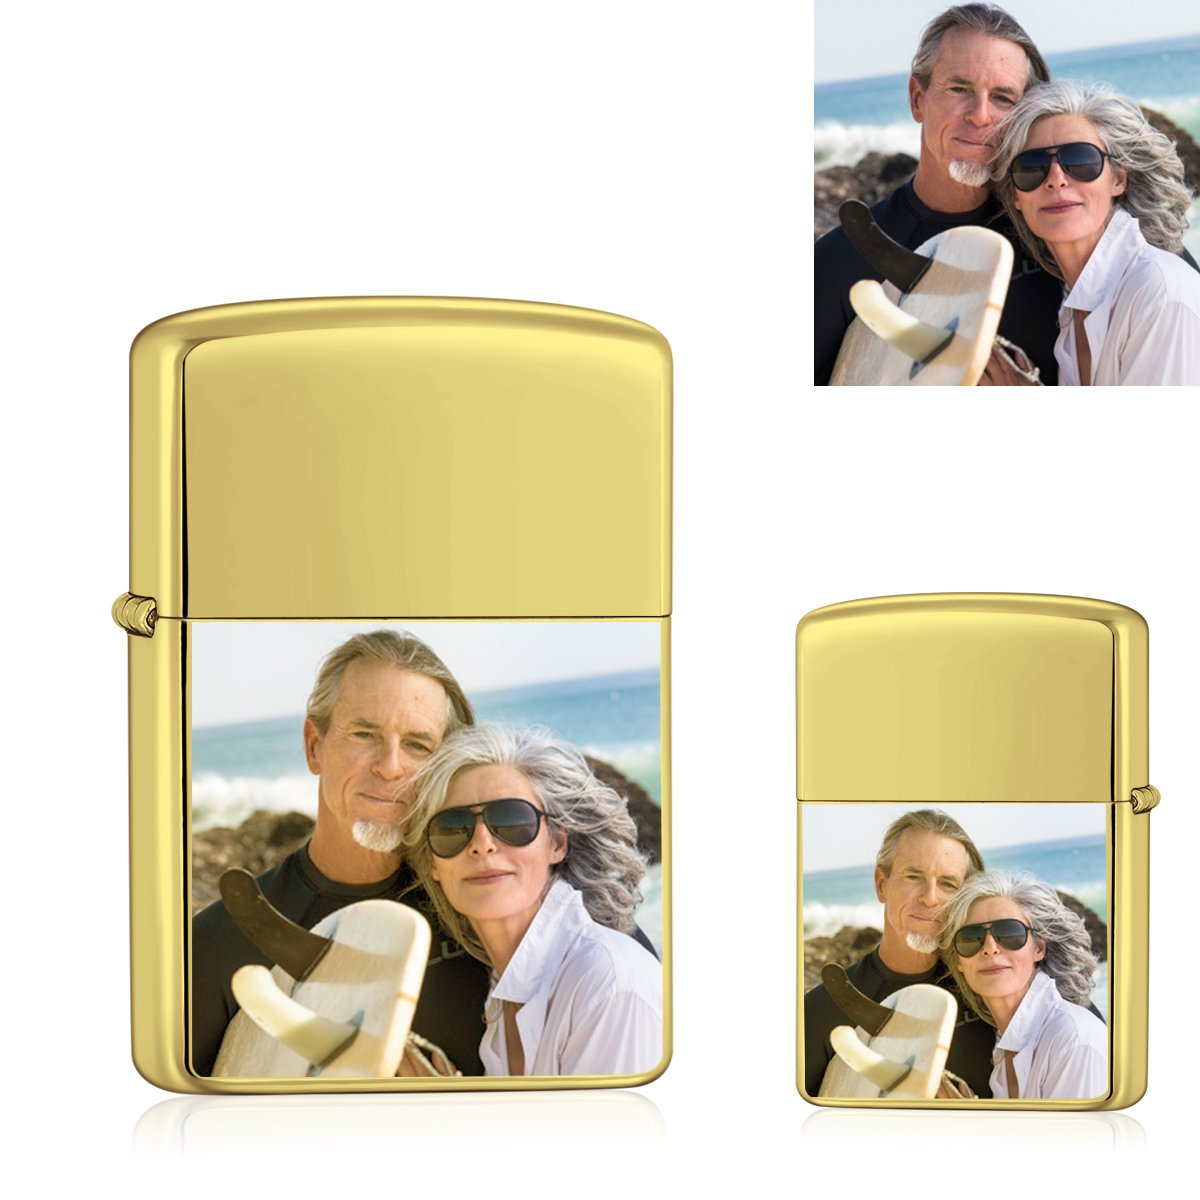 Golden | Zippo Style Custom Engraved Color Photo Lighter | USB Power | For Husband